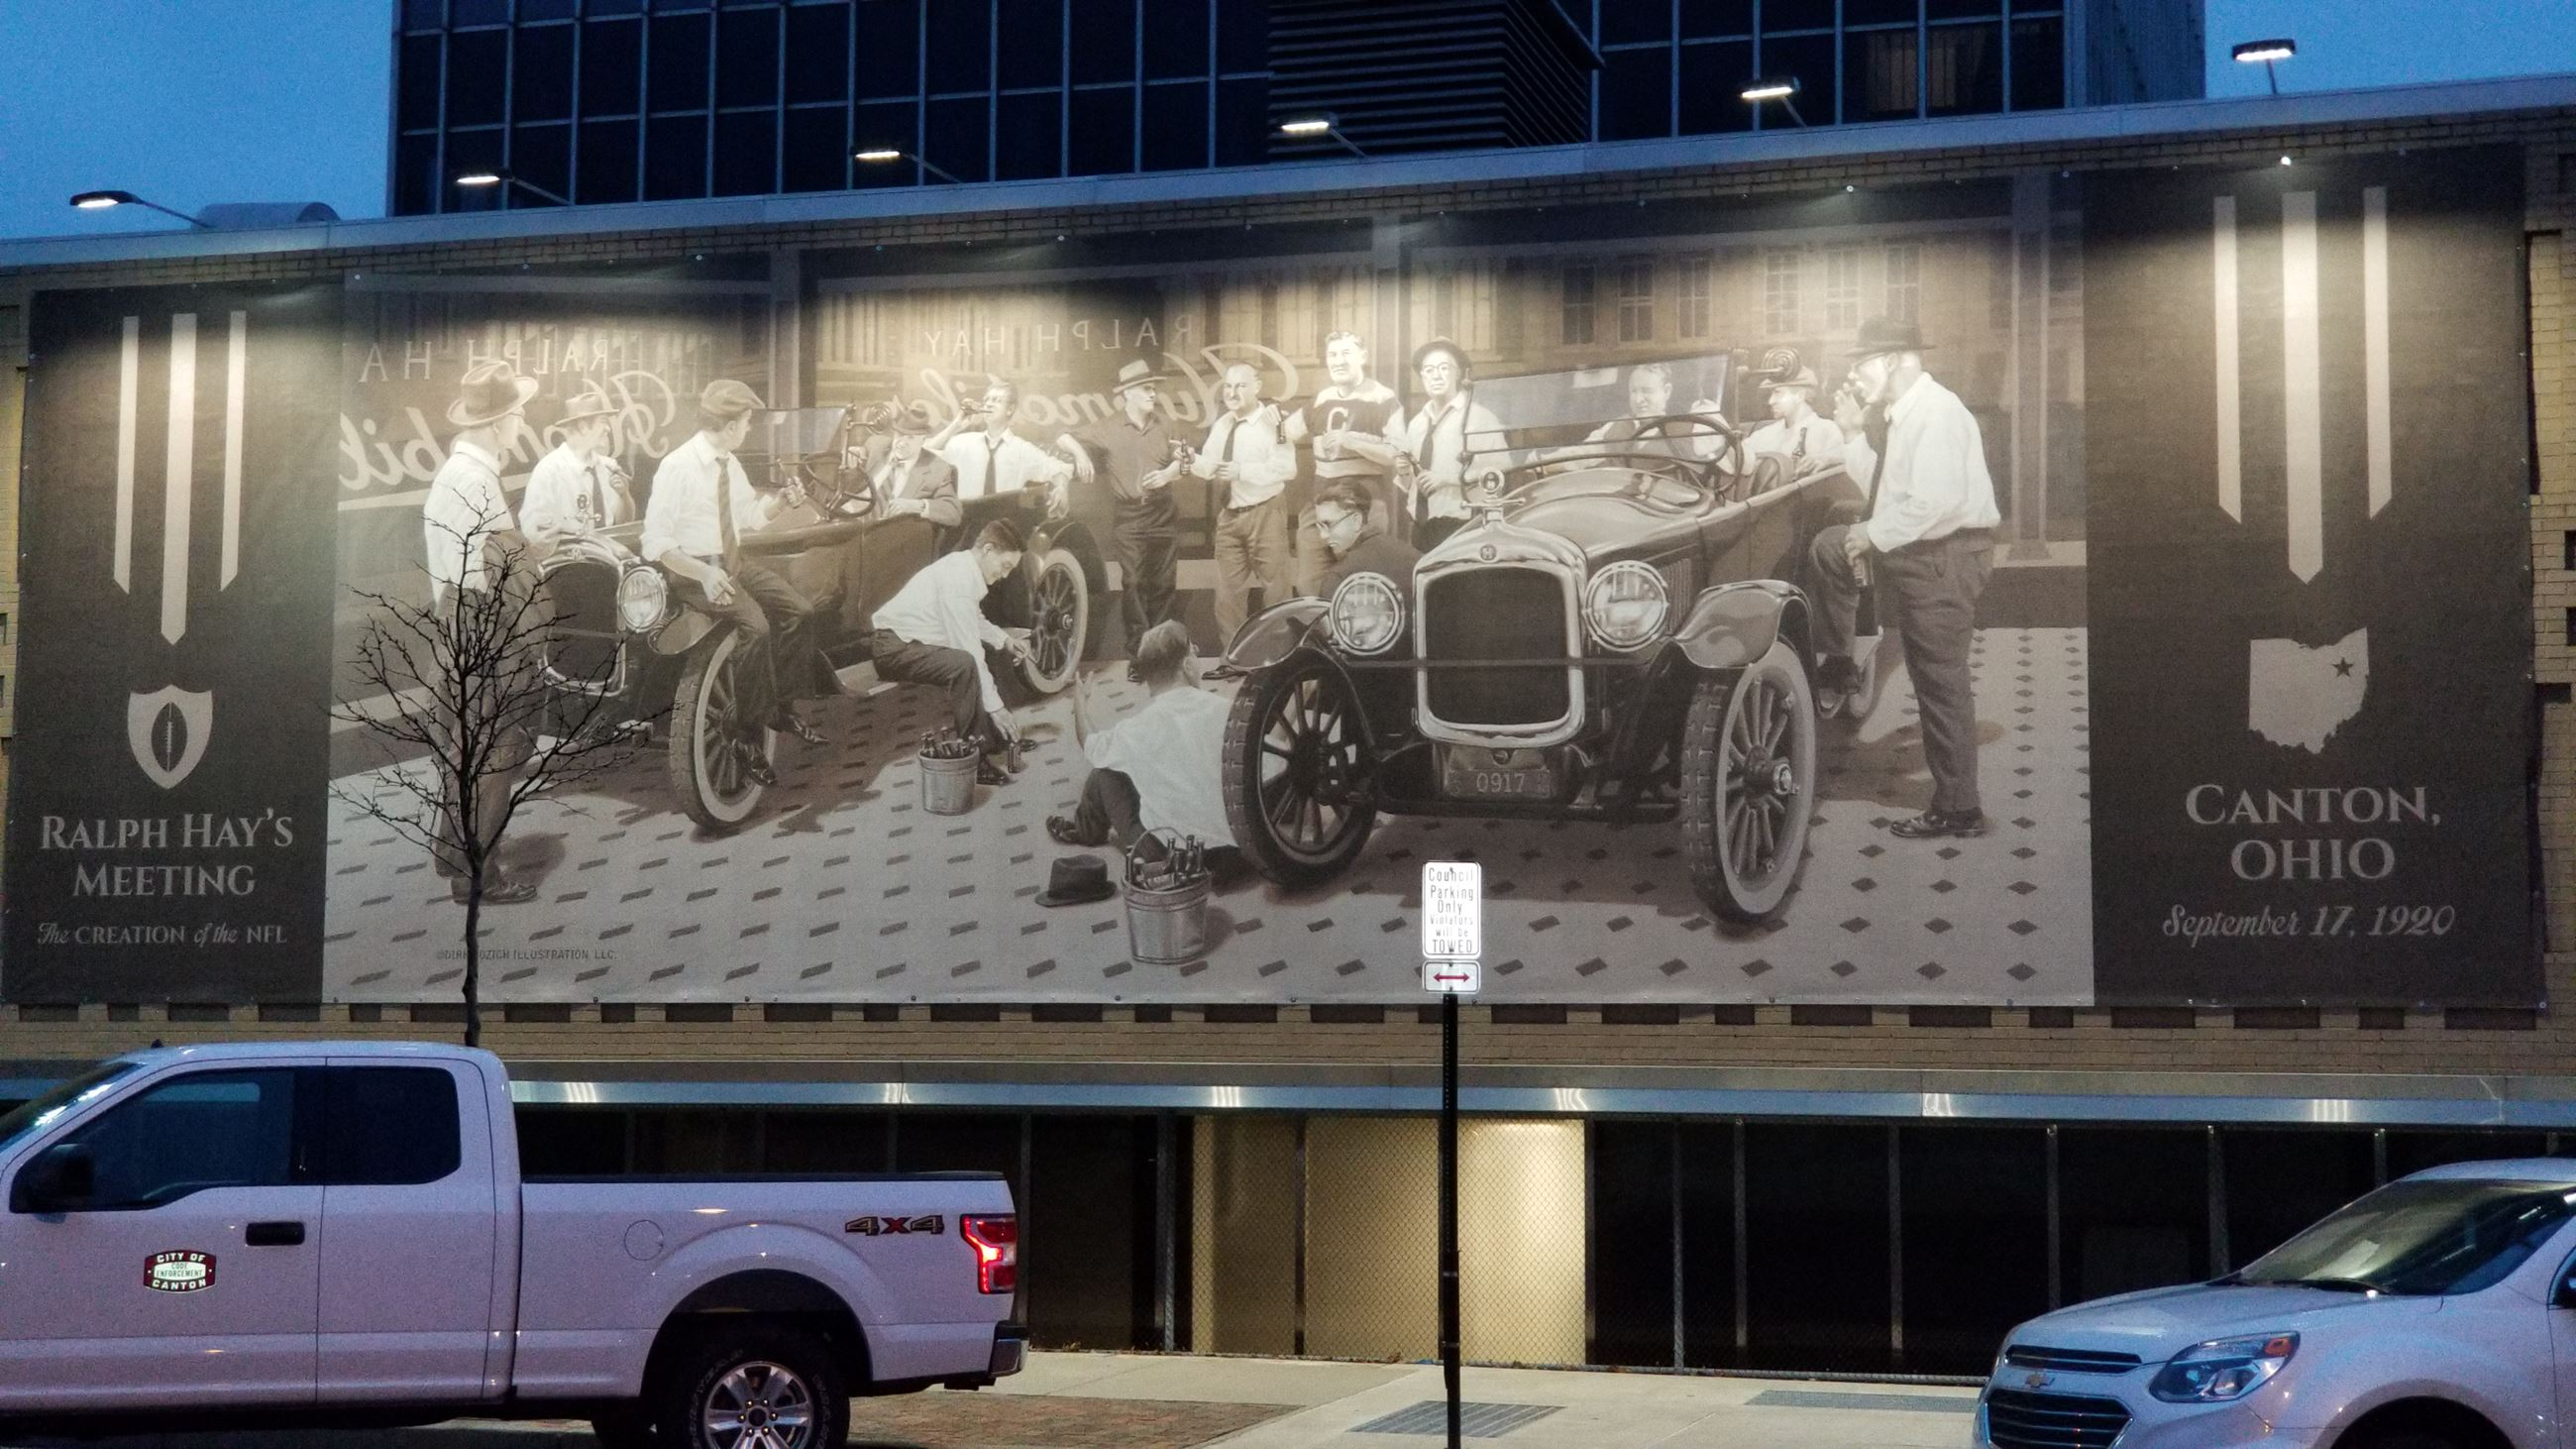 Ralph Hay Dealership on September 17th, 1920, City Hall mural